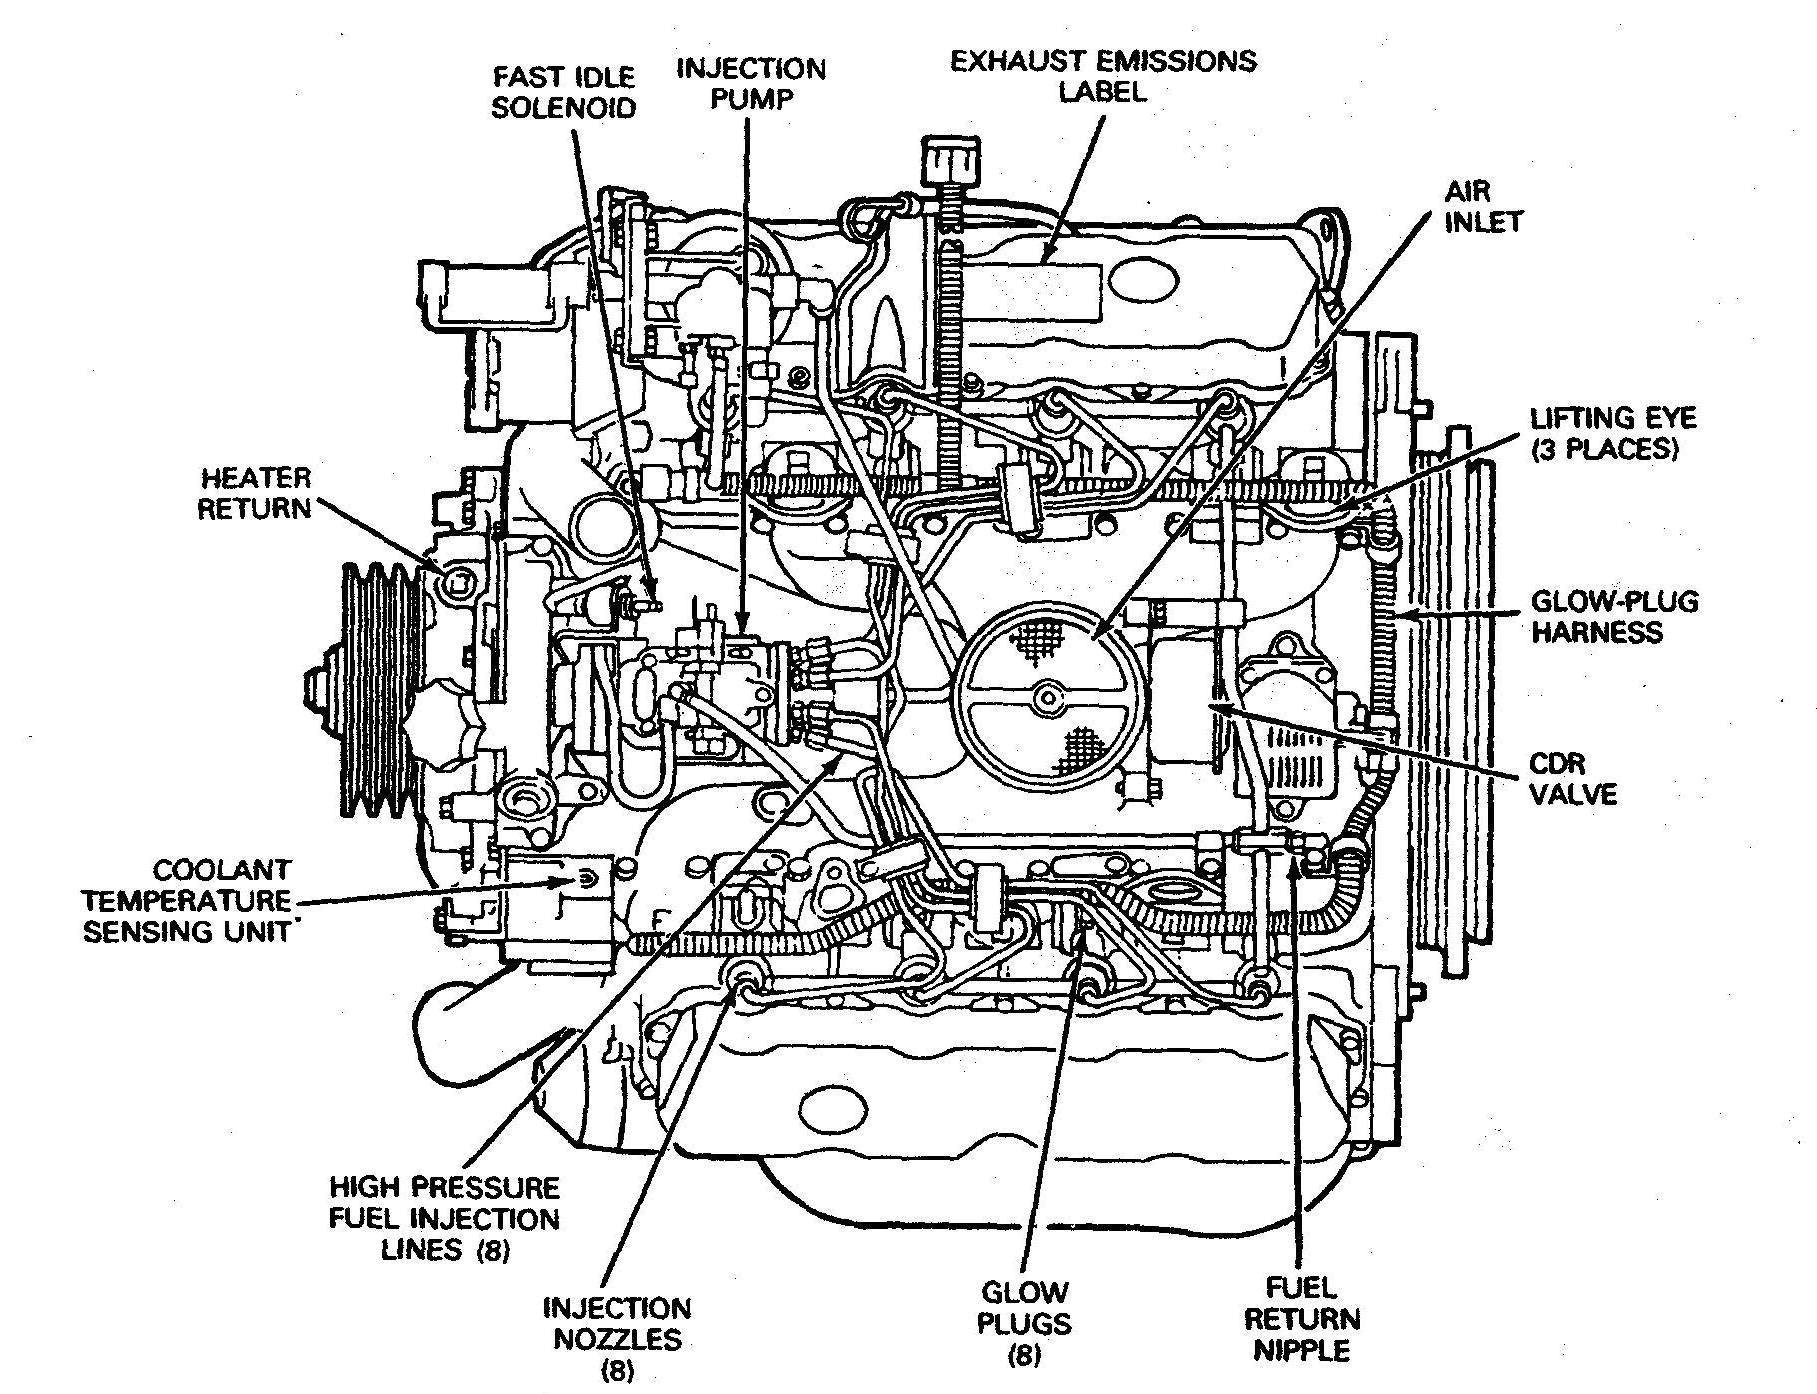 diesel engine diagram labeled engine parts diagram names wiring info rh detoxicrecenze com Car Engine Labeled Diagram of Parts Car Engine Diagram with Labels